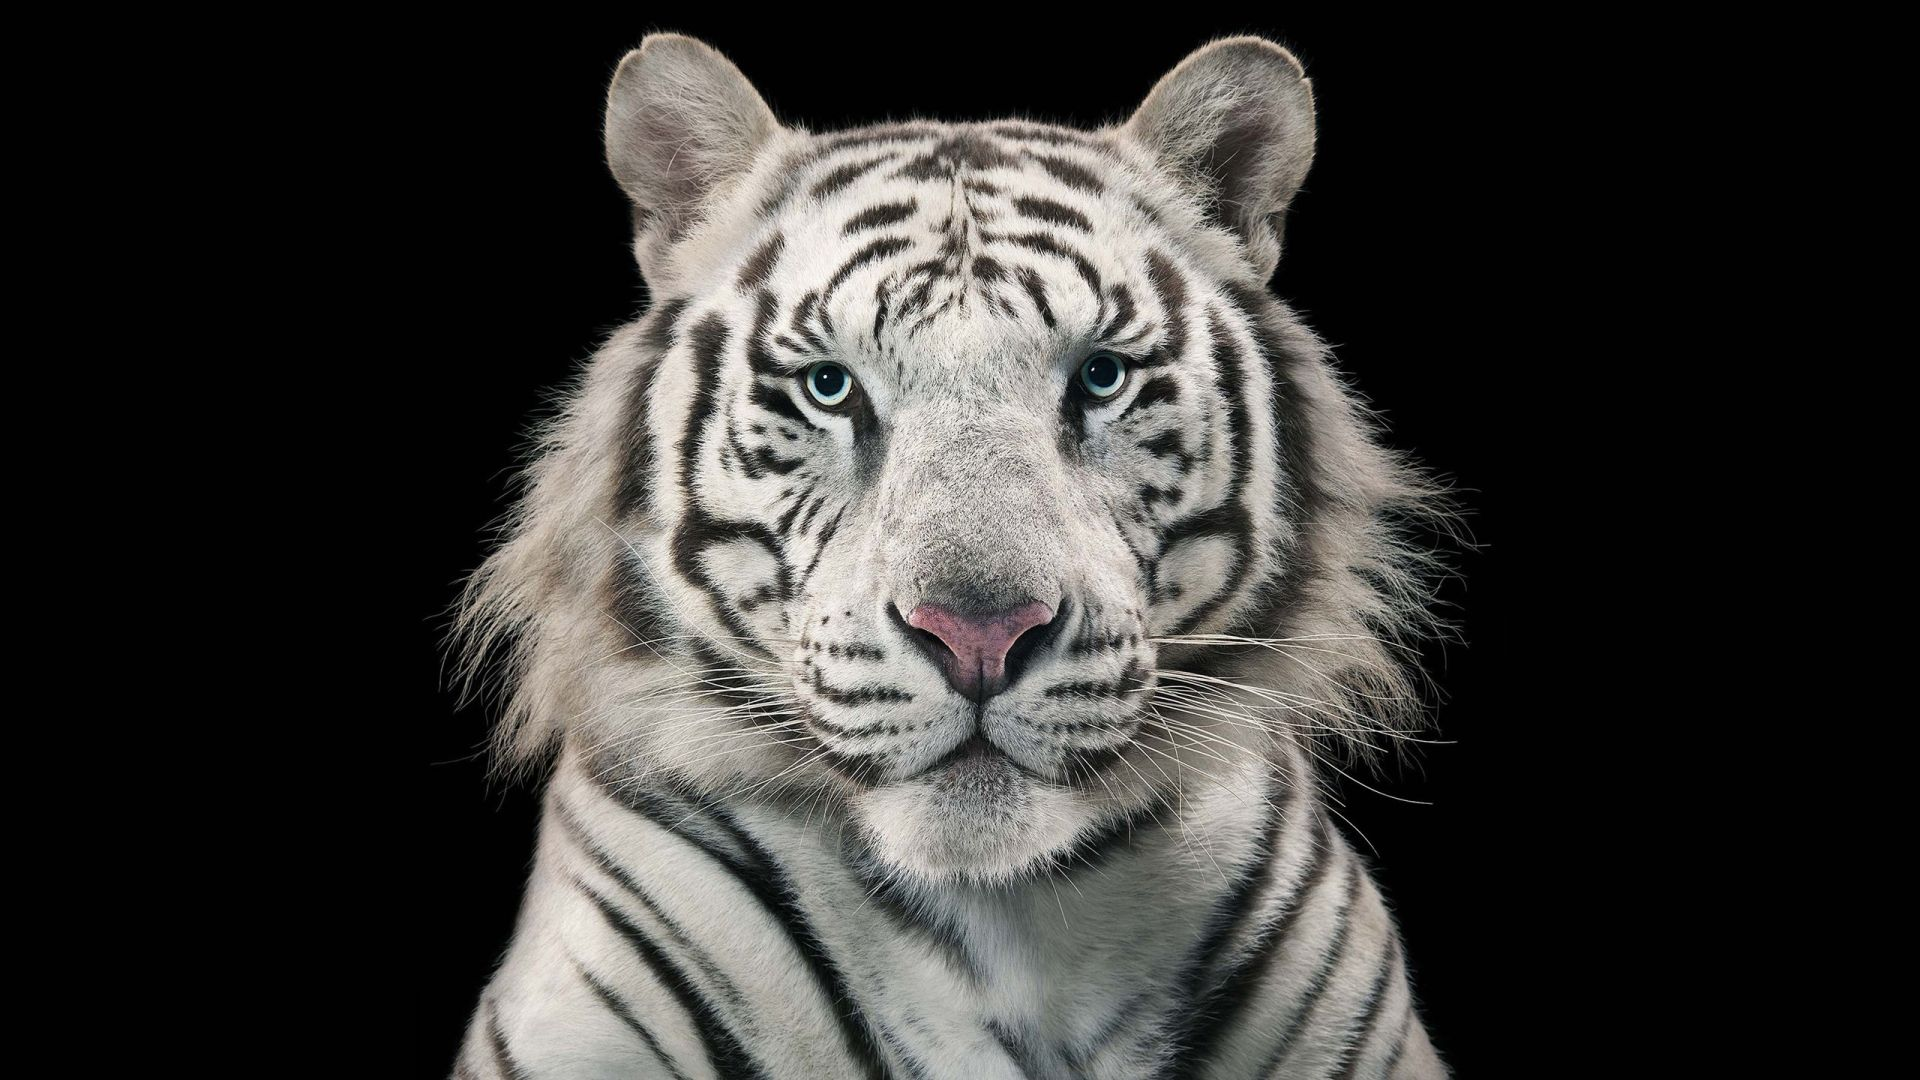 White Tiger Face, Background Wallpaper HD